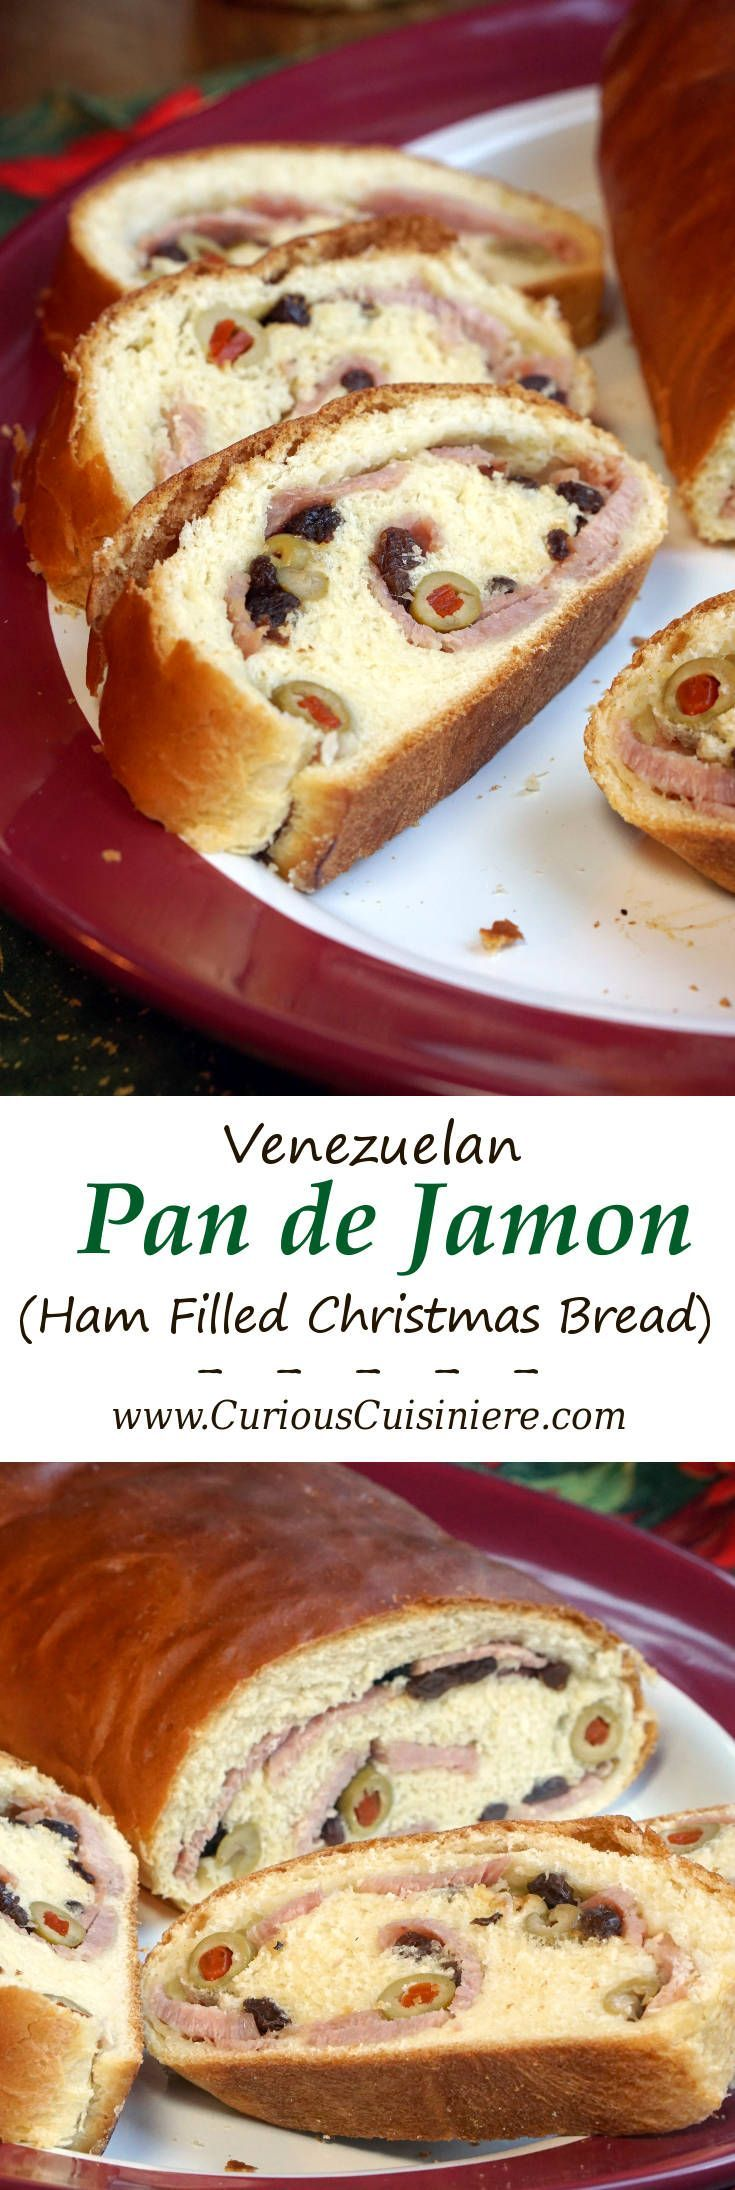 Pan de Jamon is a traditional Venezuelan Christmas bread filled with ham and olives. Its robust flavors are a unique tribute to Venezuelan culture. | www.CuriousCuisiniere.com